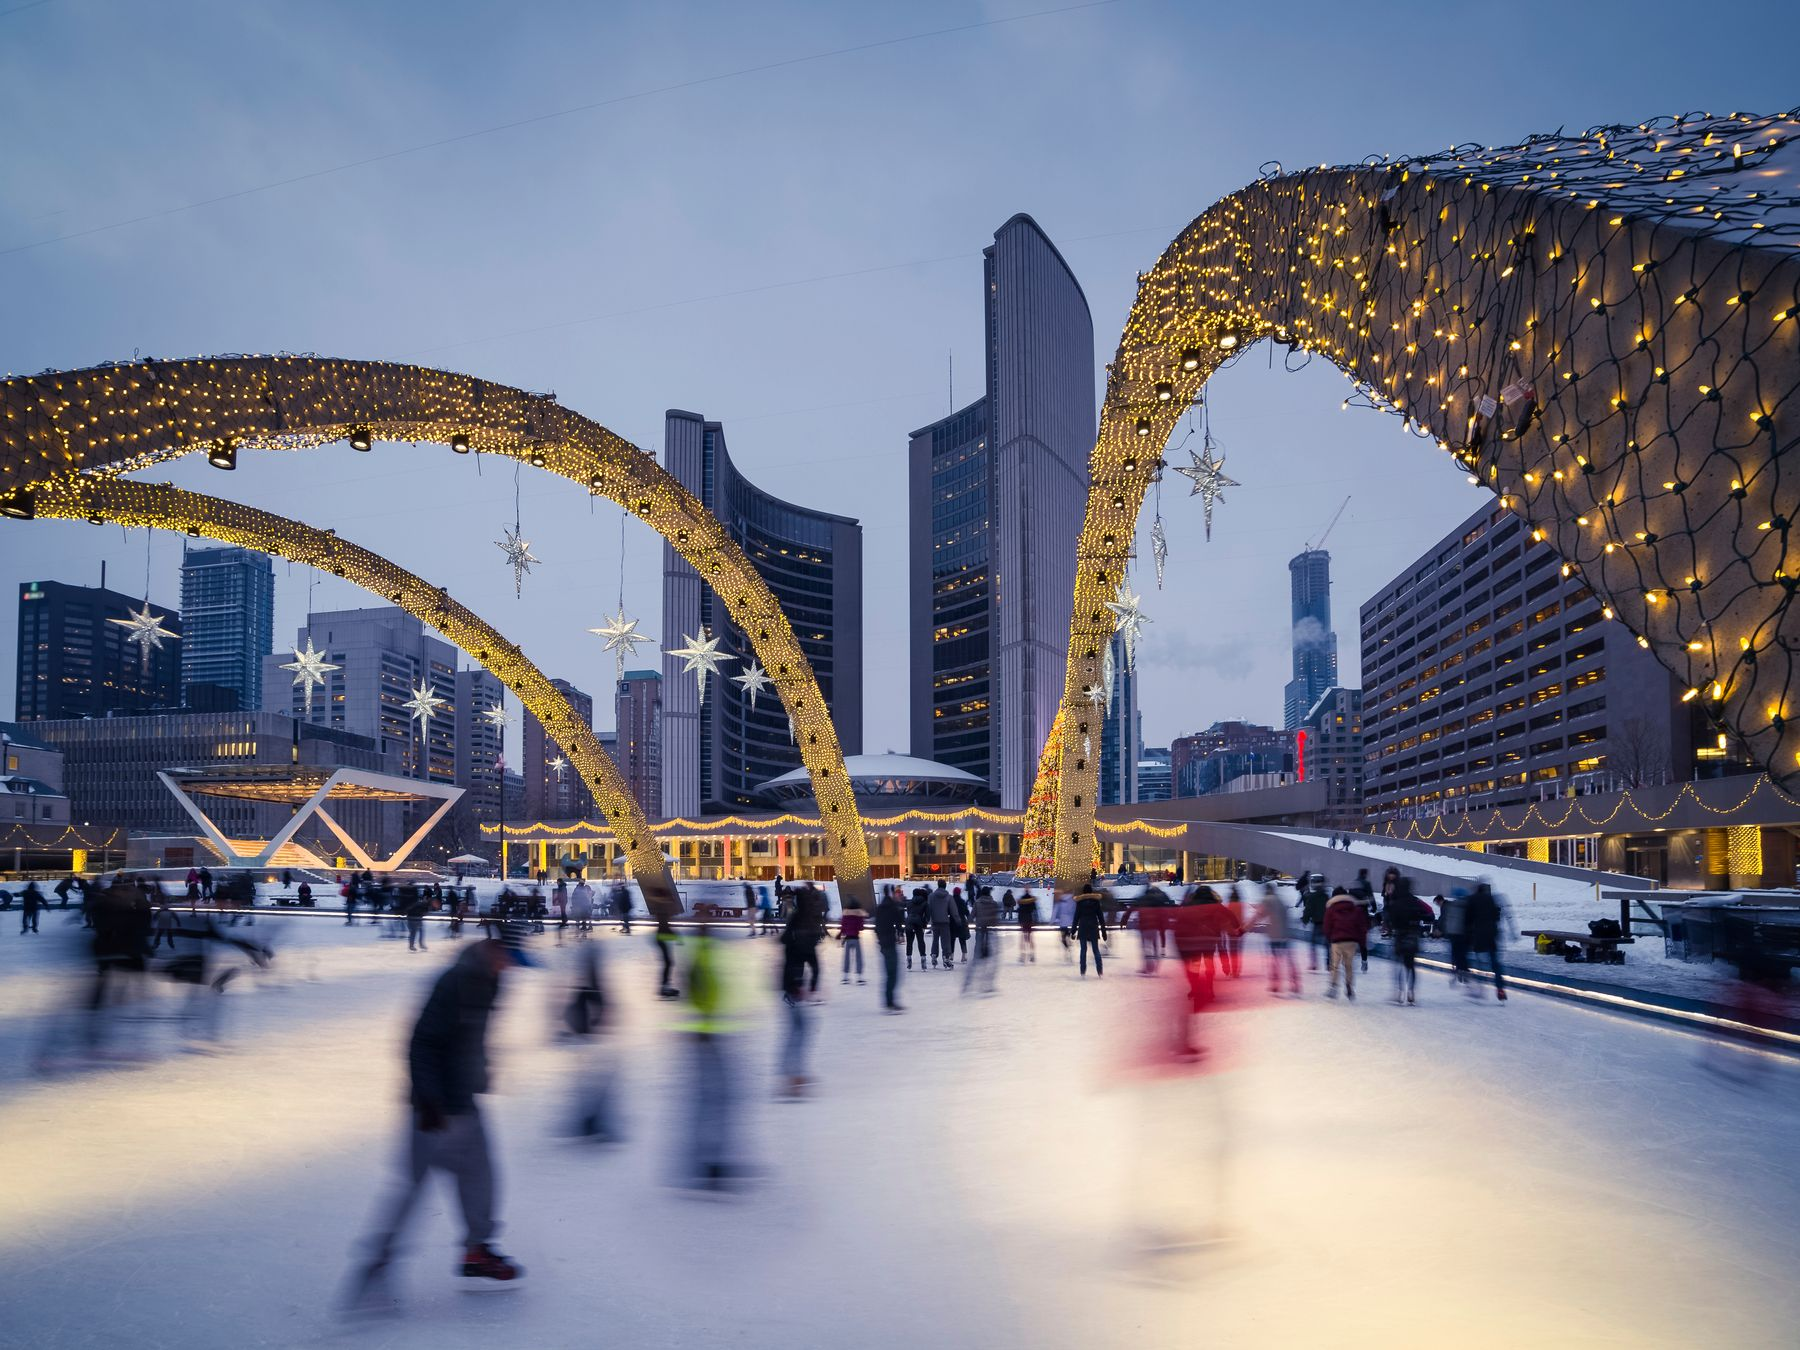 fast-motion shot of people skating at Nathan Phillips Square in Toronto, a popular winter activity and thing to do in Toronto